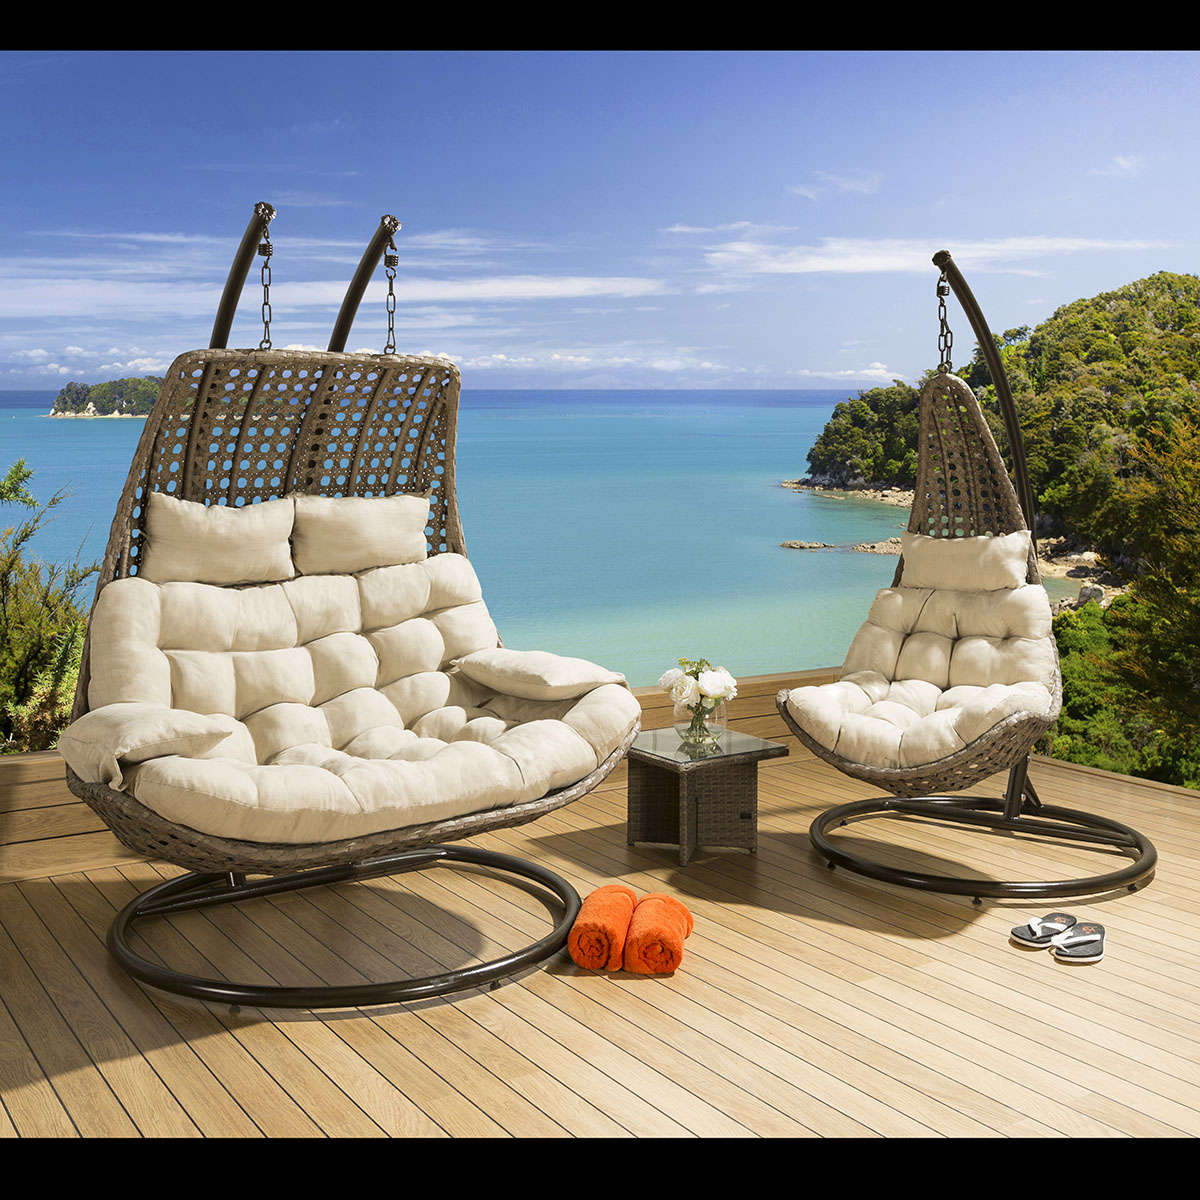 hanging chair mr price covers direct from china outdoor rattan 2 person garden sunbed